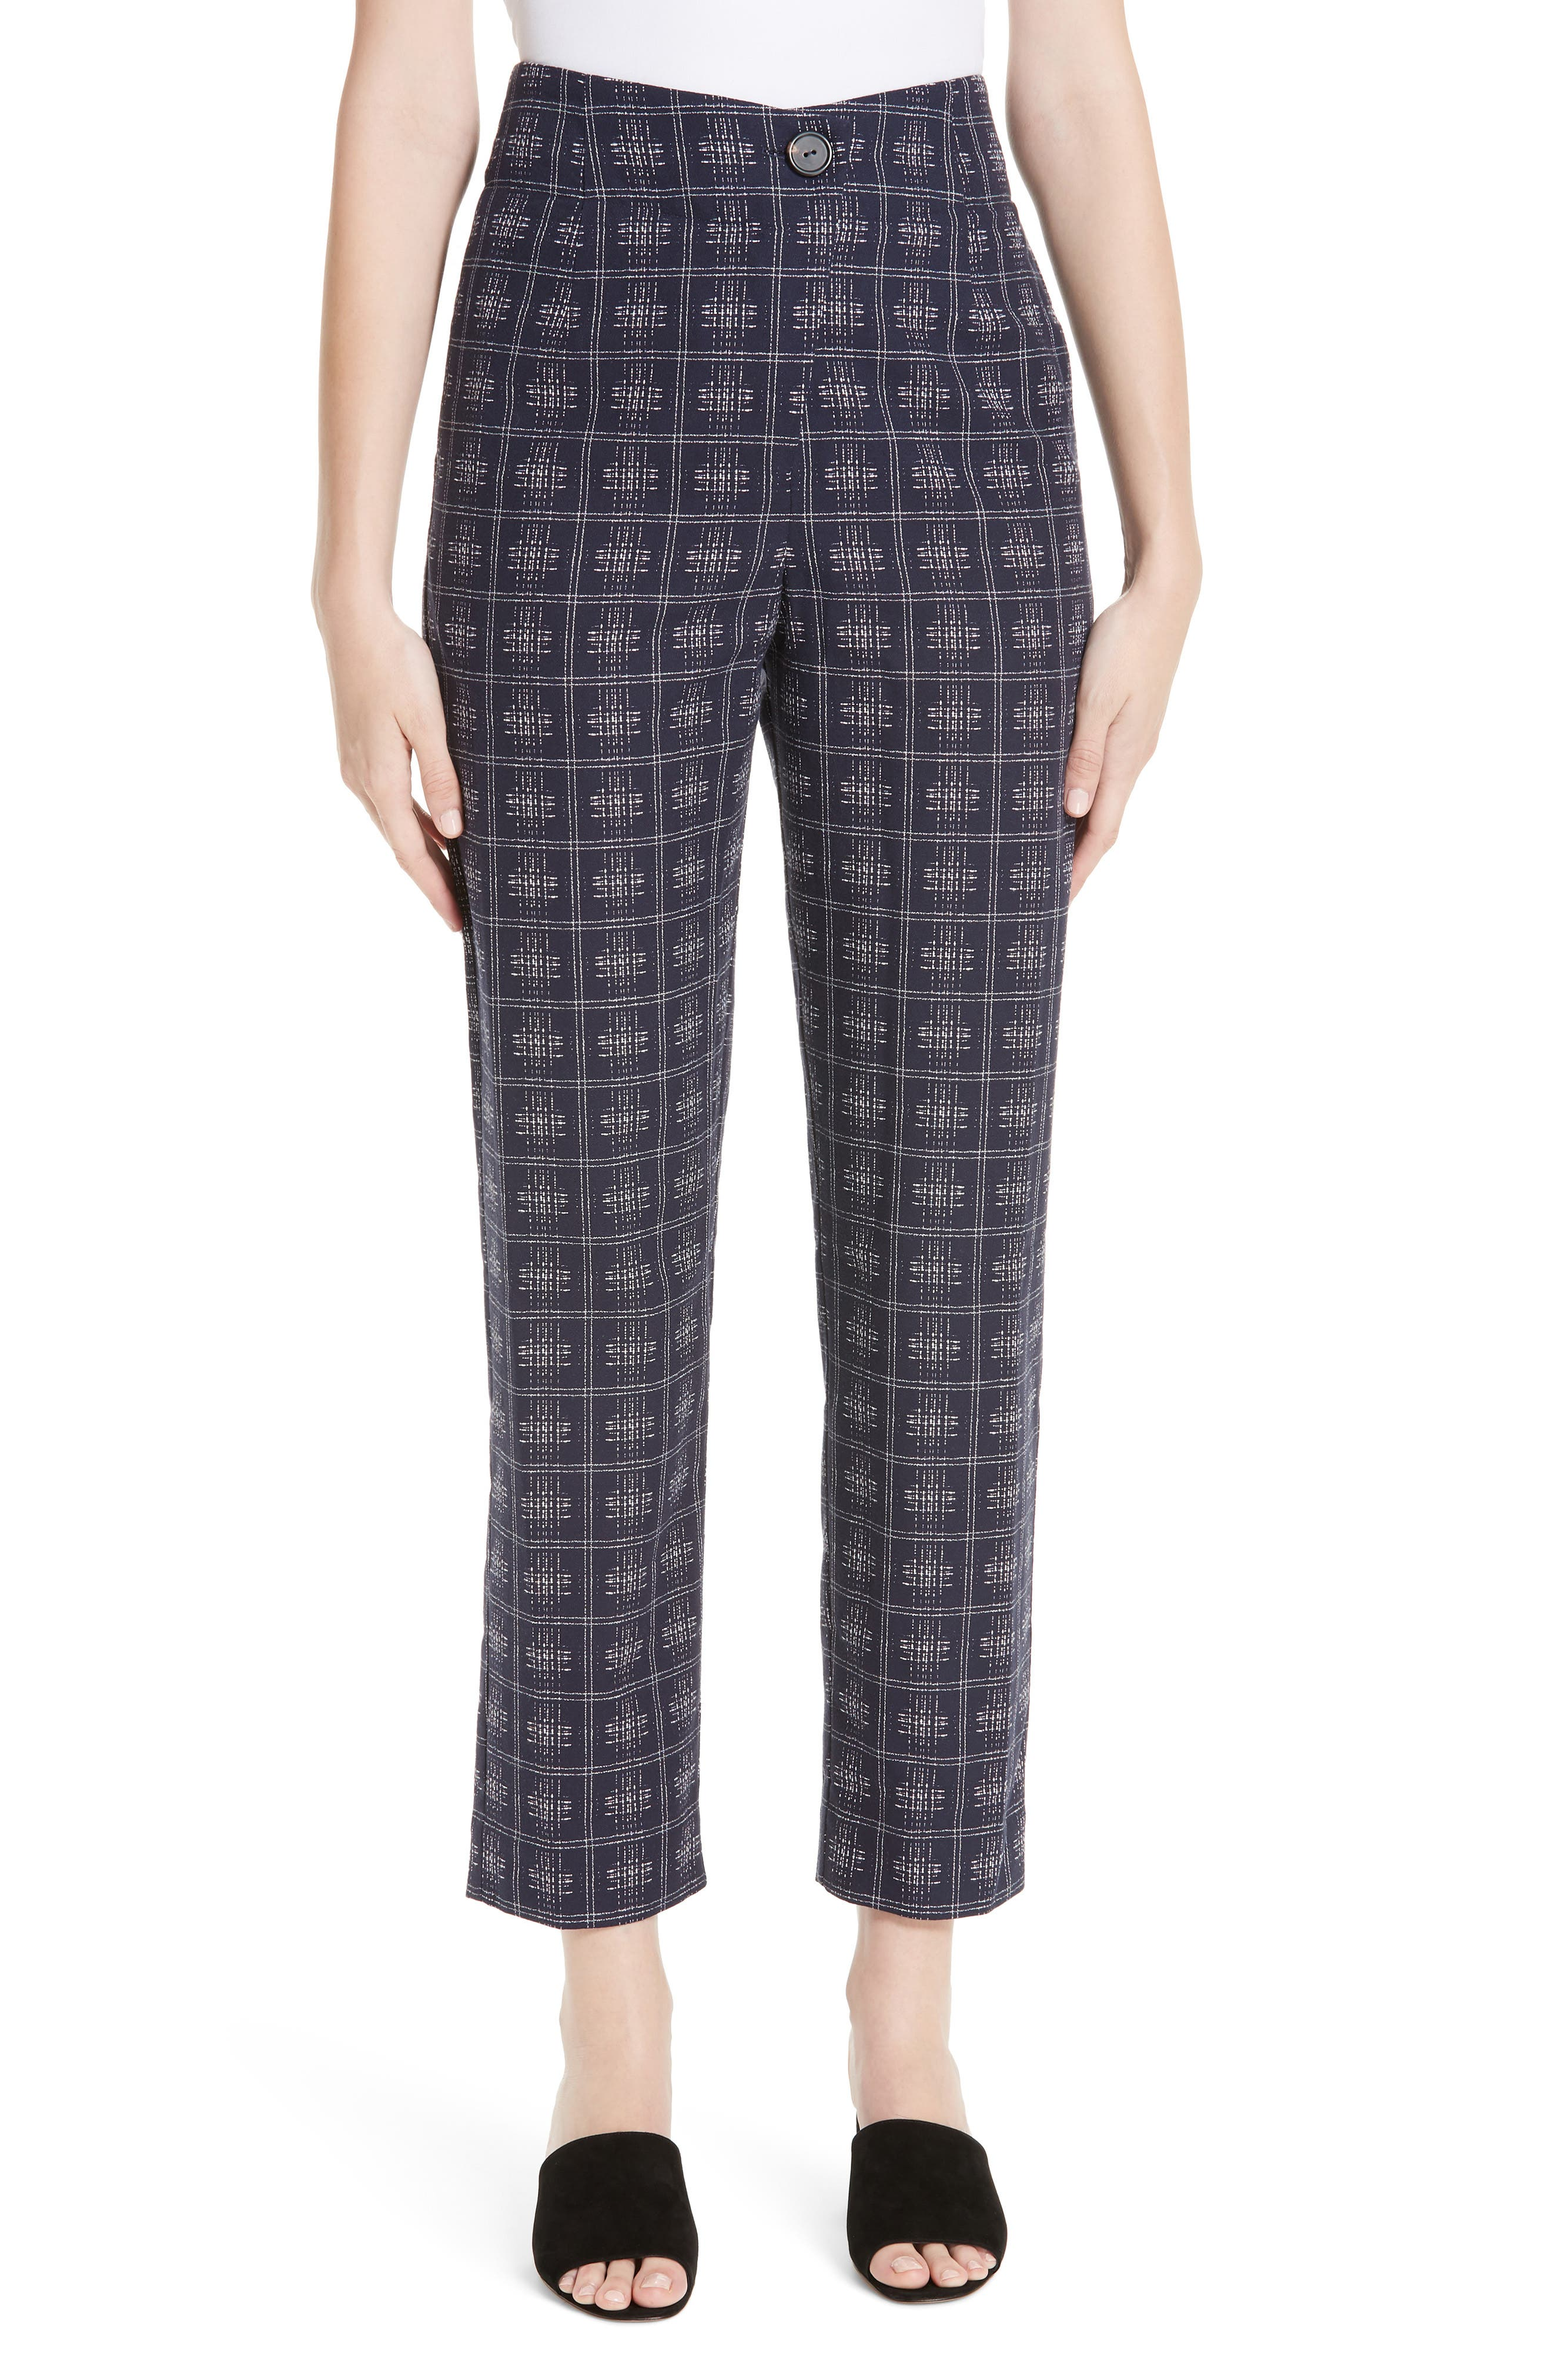 PALMER/HARDING, Fractured Trousers, Main thumbnail 1, color, NAVY CROSSHATCH CHECK